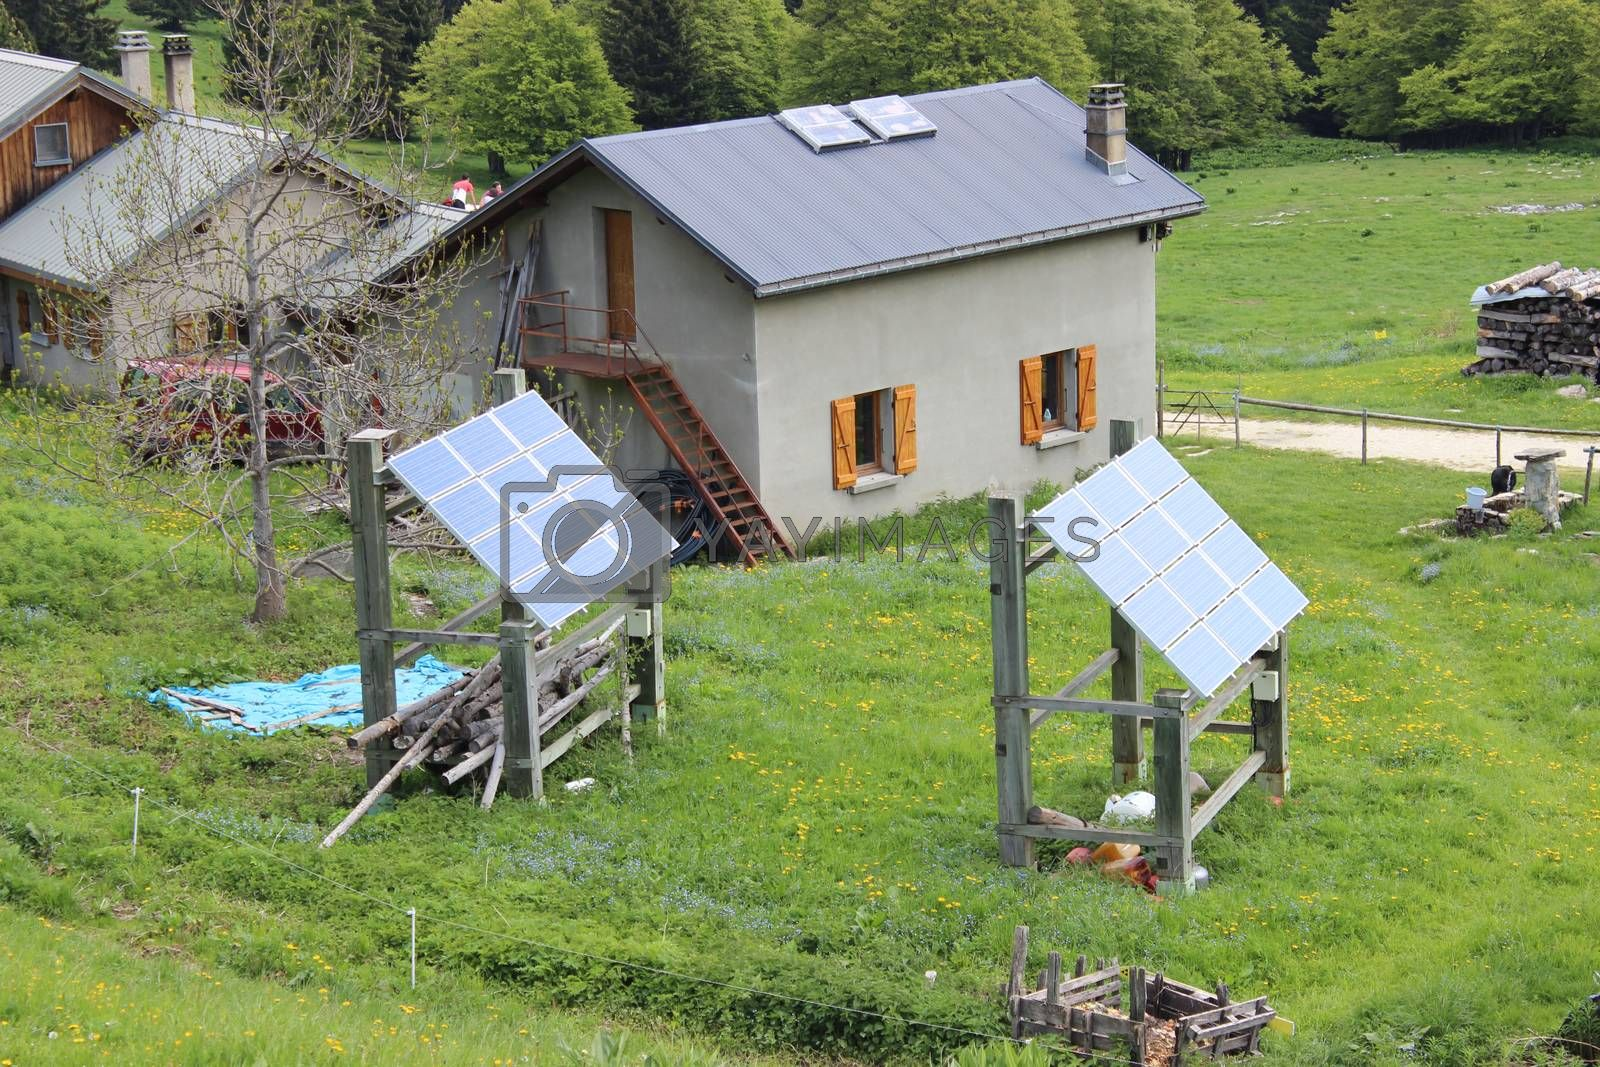 Mountain chalet with solar panels. Villard-de-Lans, France